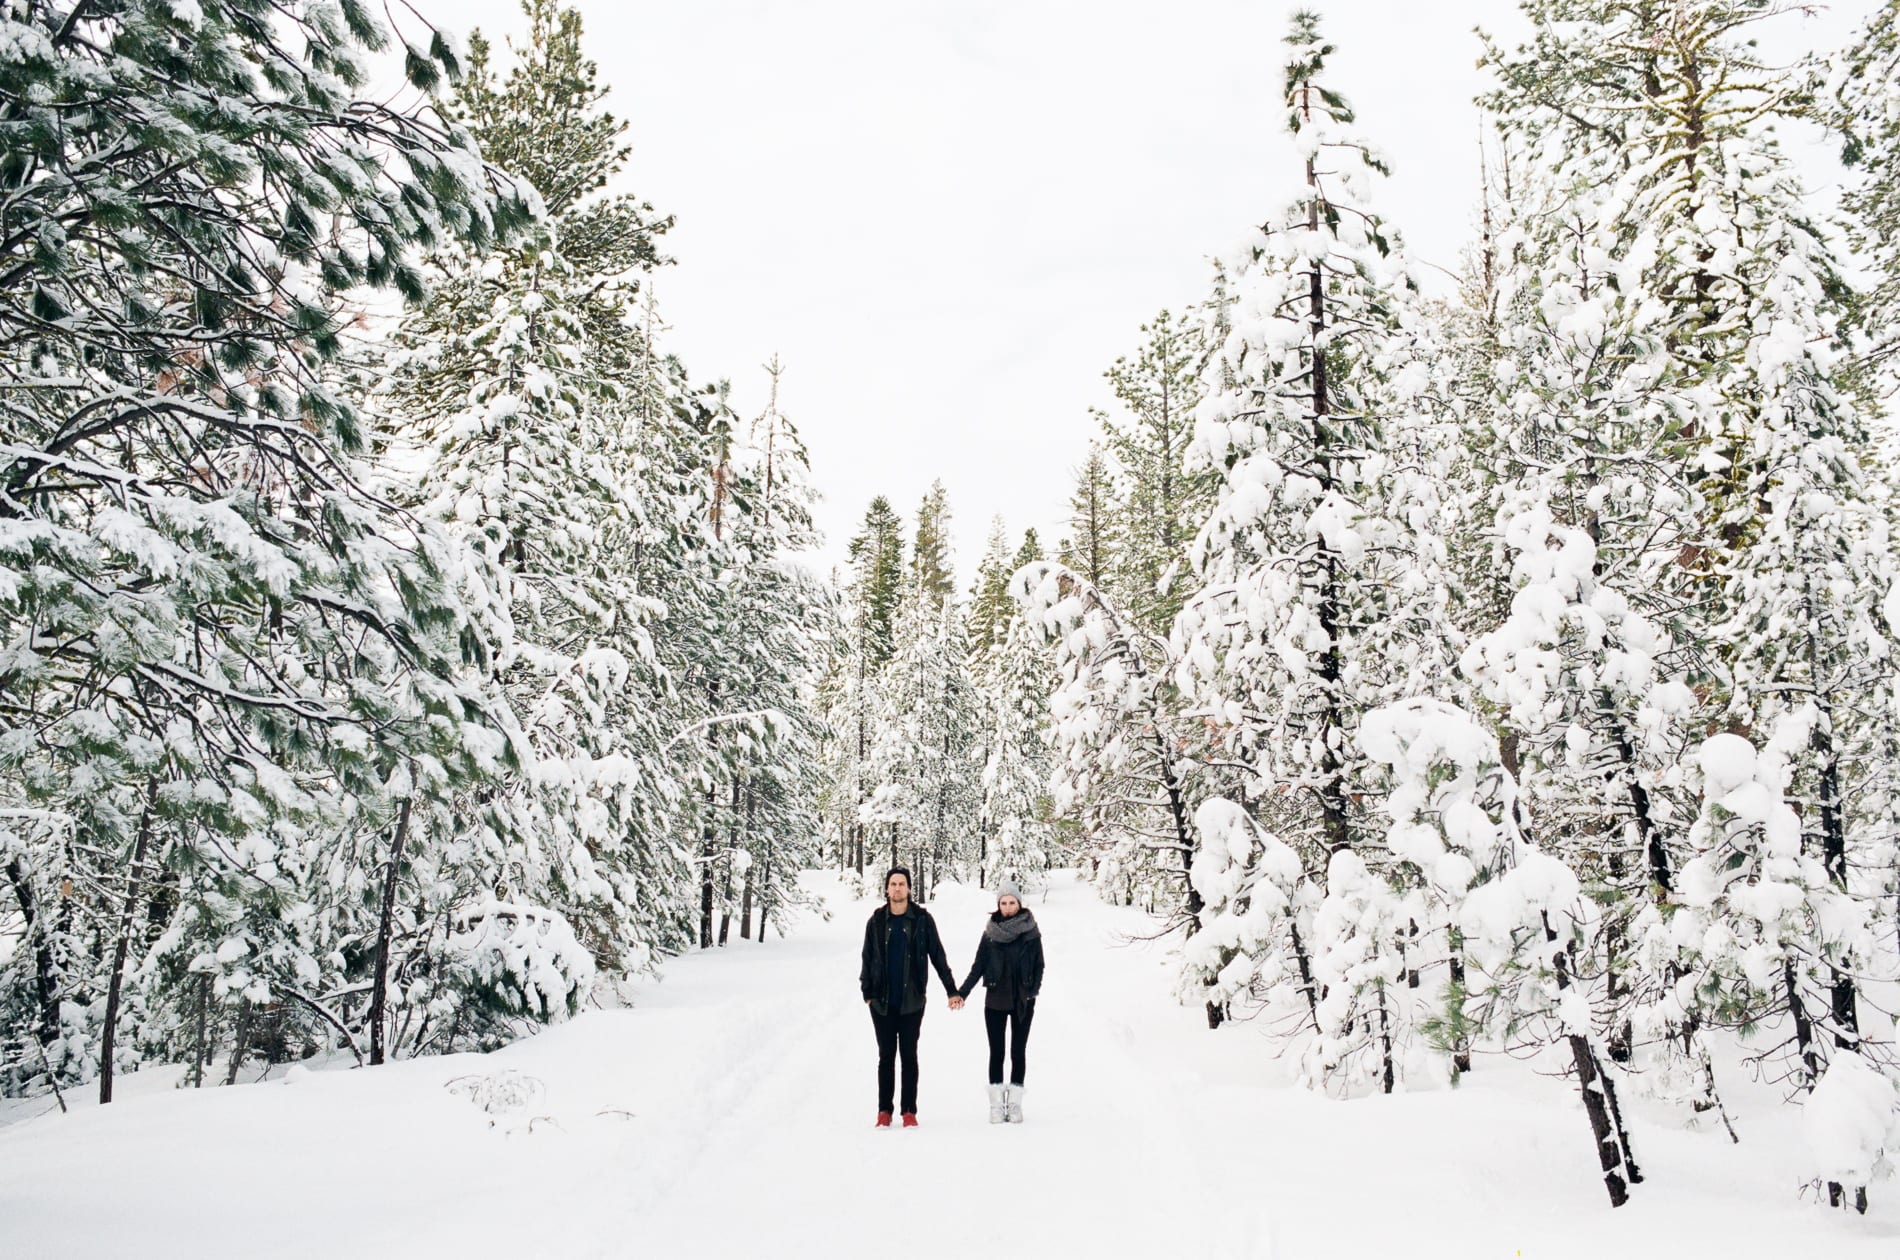 mt-lassen-winter-snow-couples-photo-6